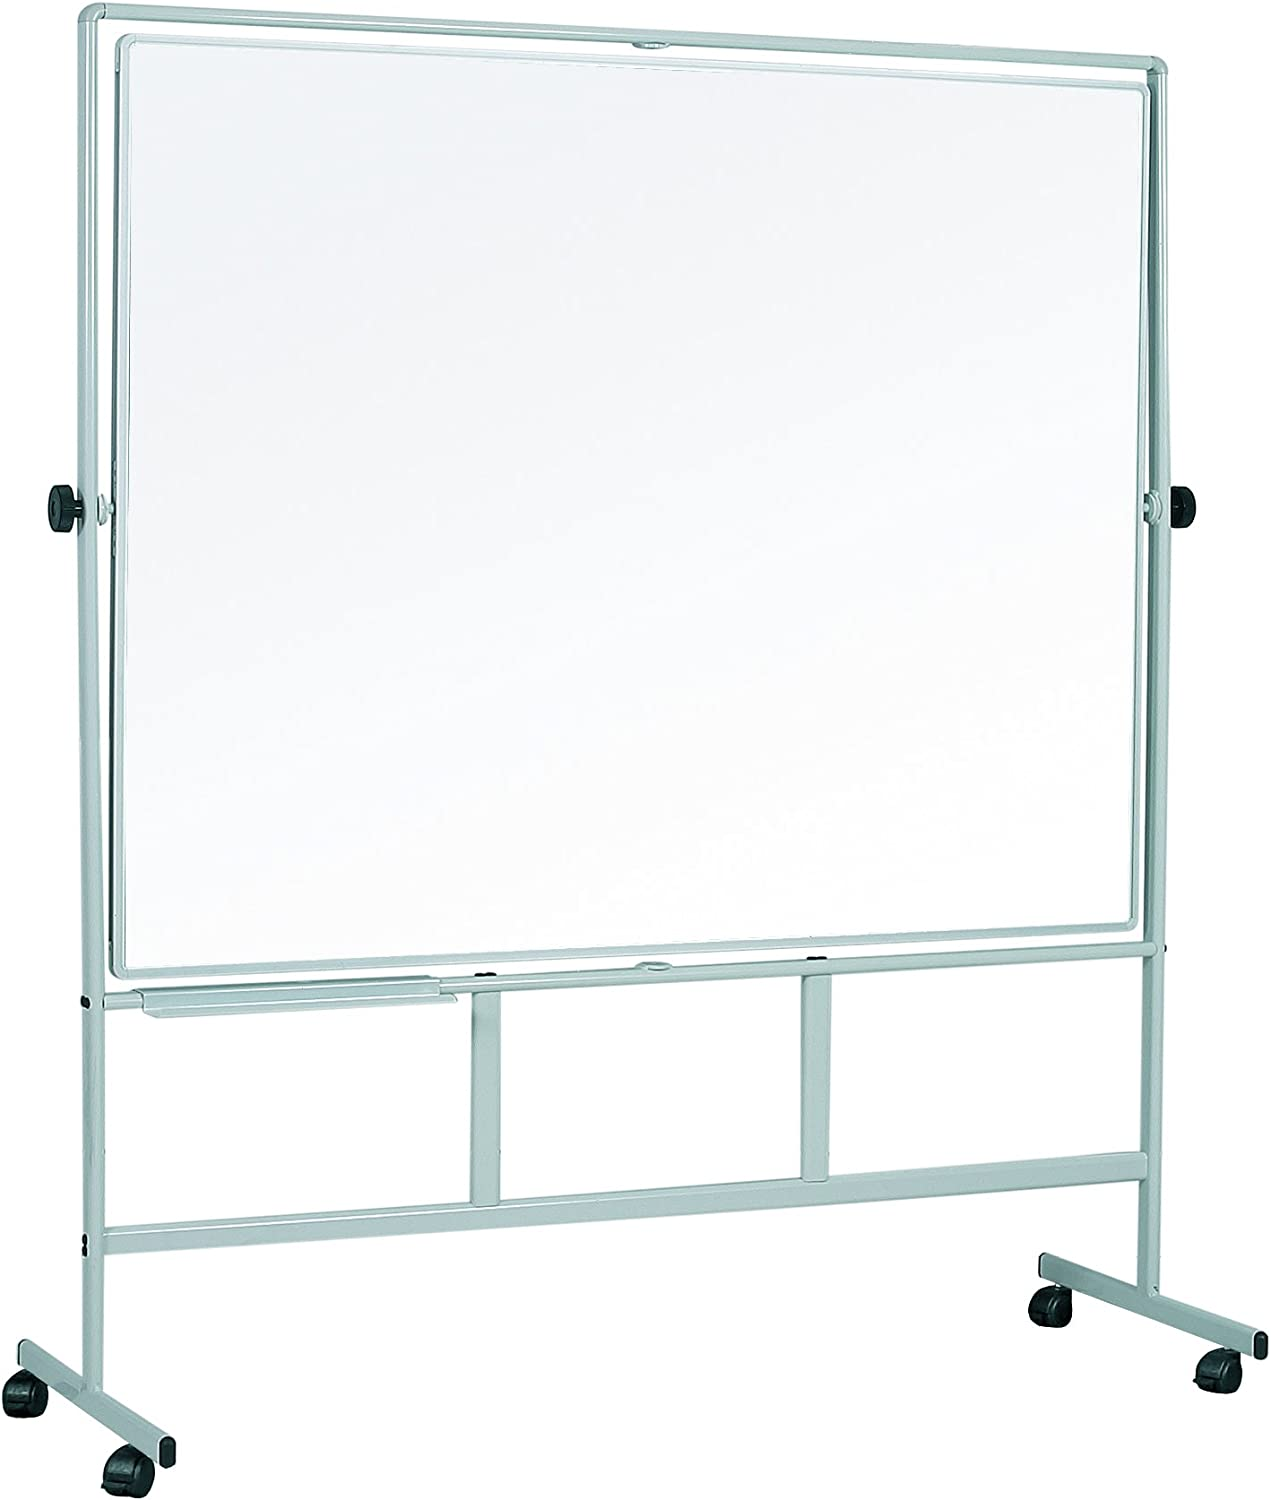 Under blast sales Bi-Office Revolver Plus Double-Sided Dry Erase Special price Magnetic Board